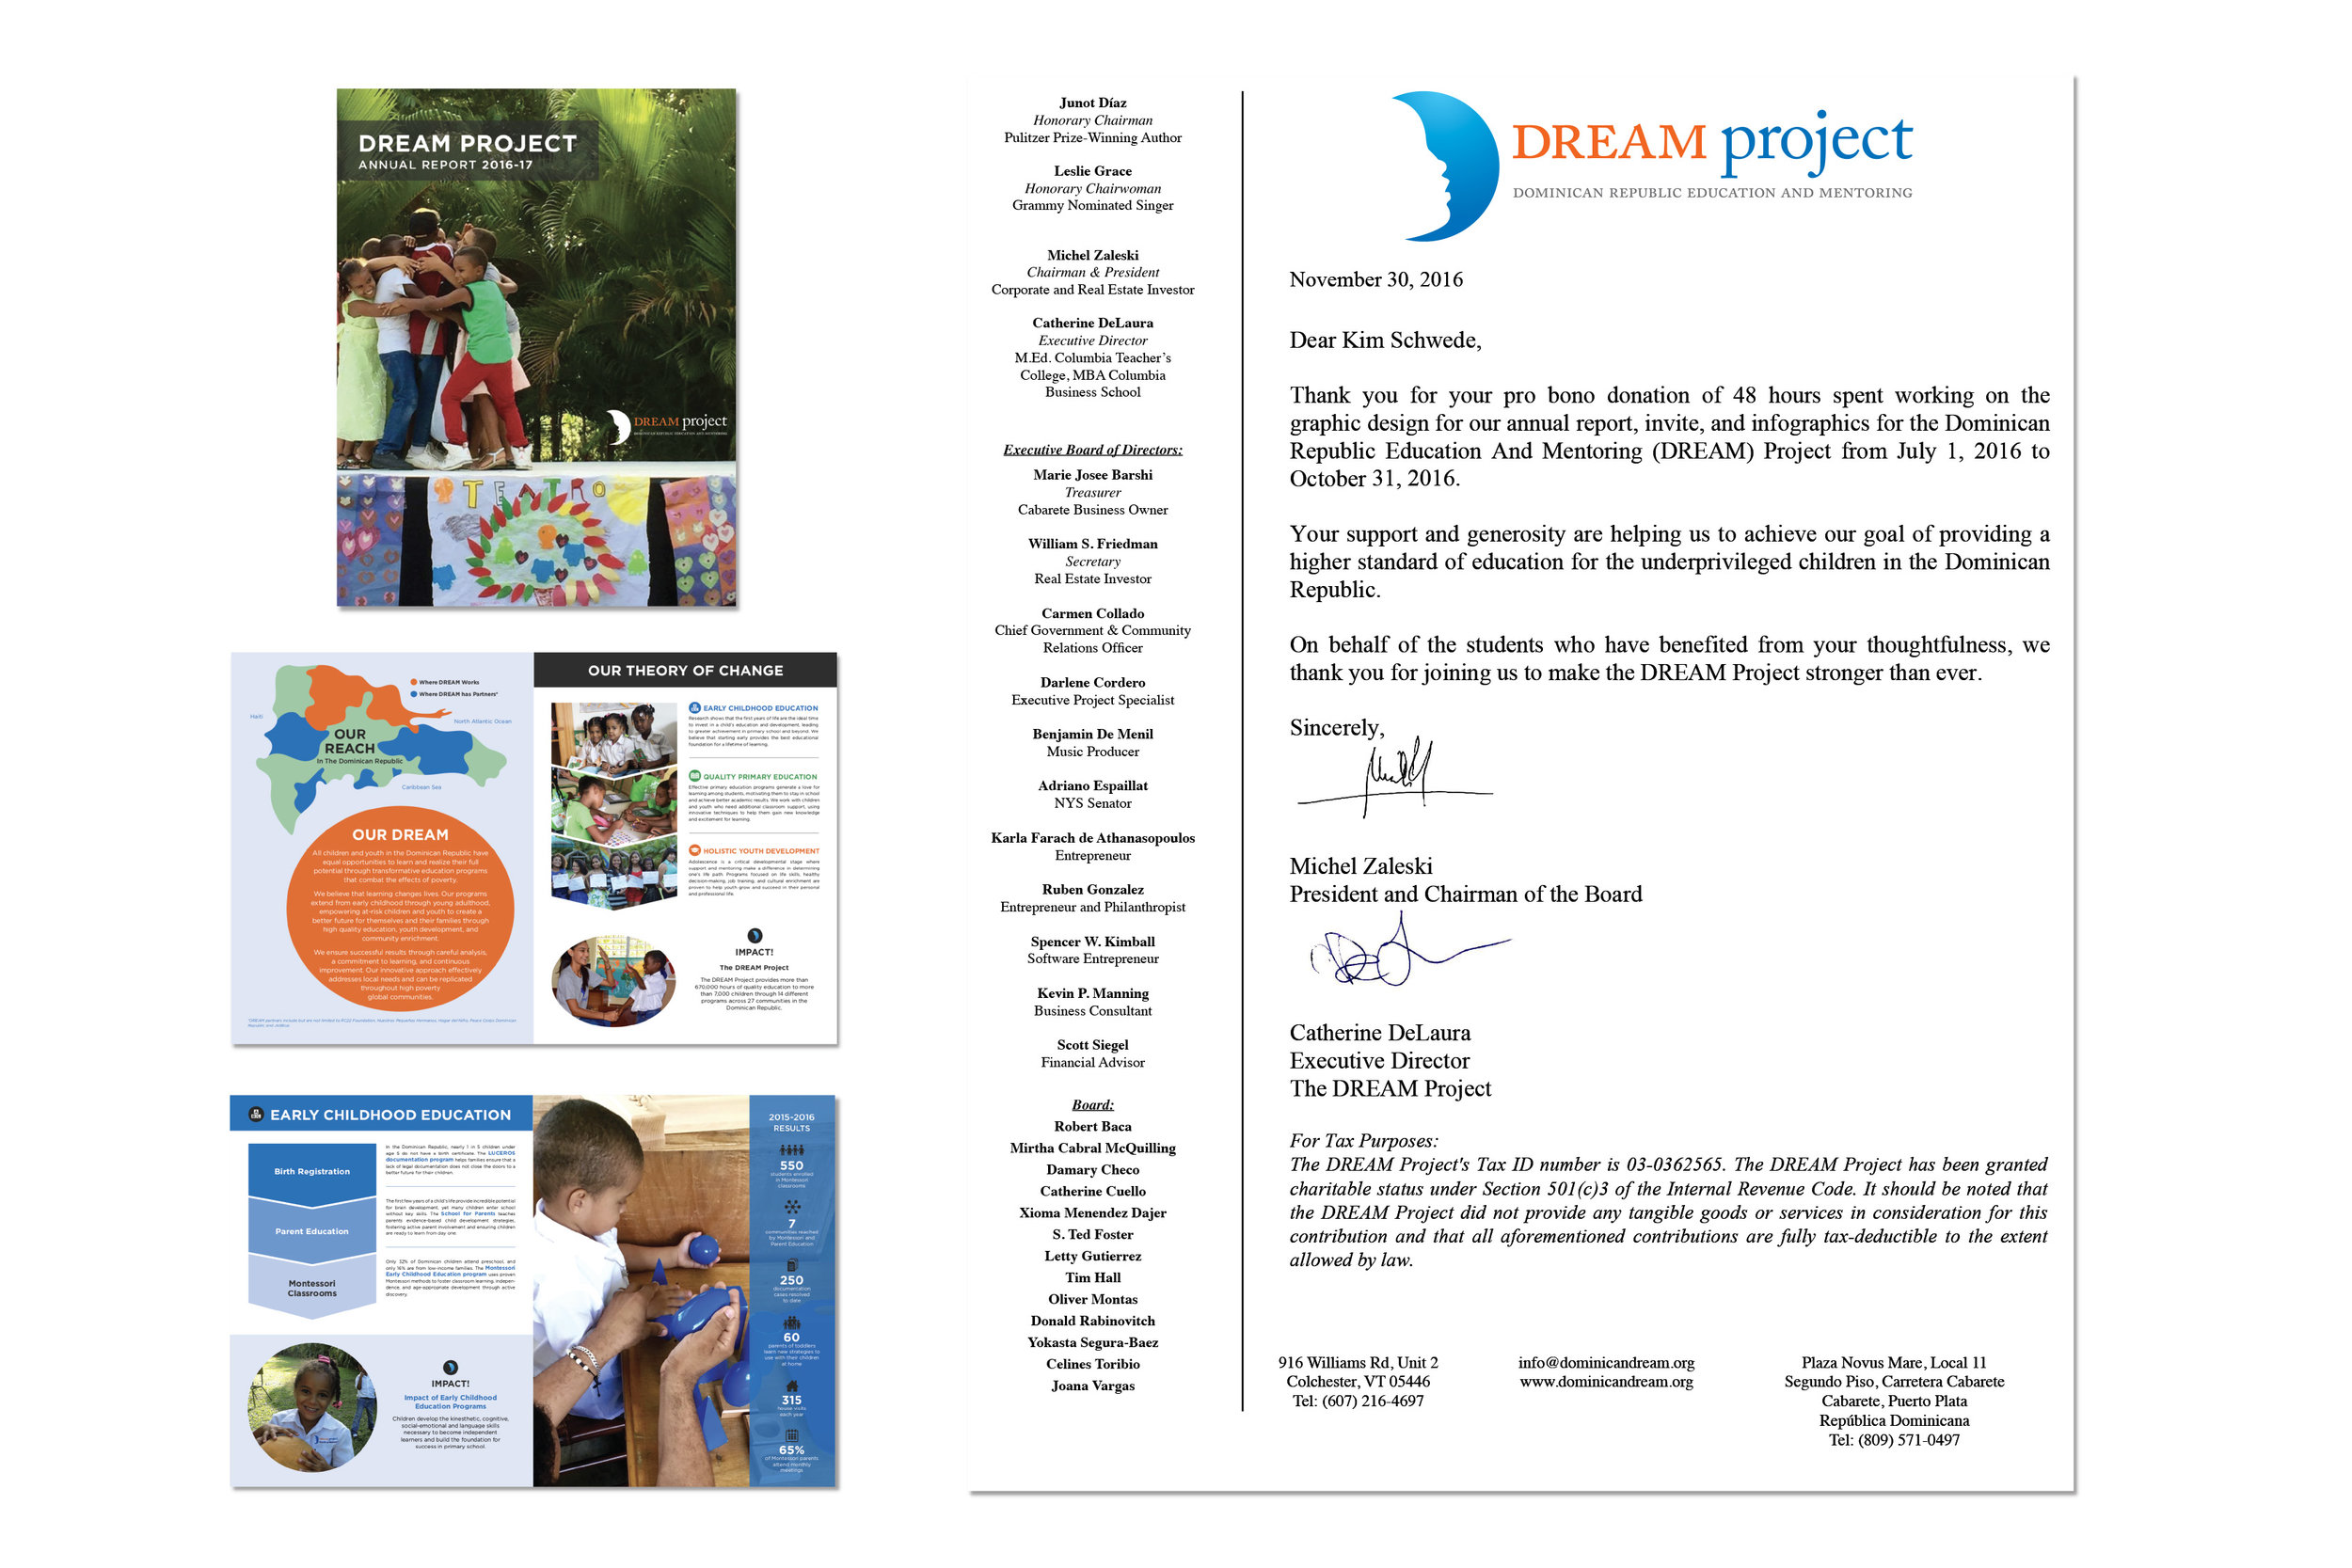 Dream project dominican republic annual report design by kimberly schwede.jpg